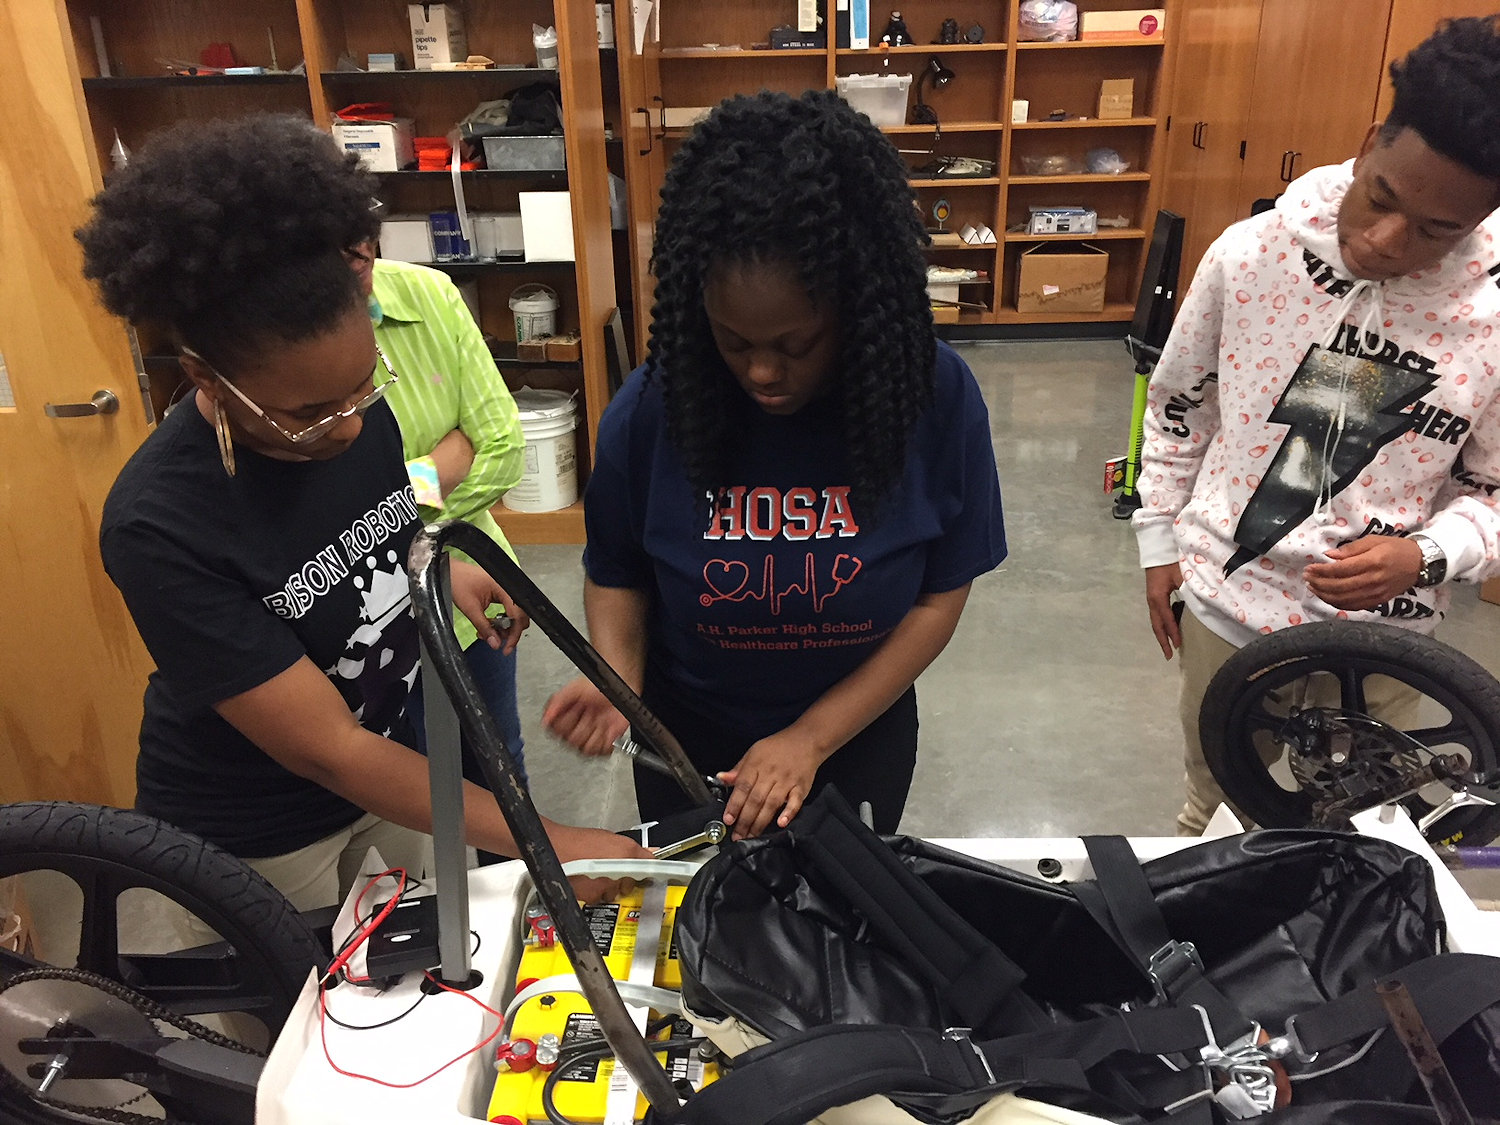 LINKS-STEMREADY Program Brings National Resources to Local Initiatives